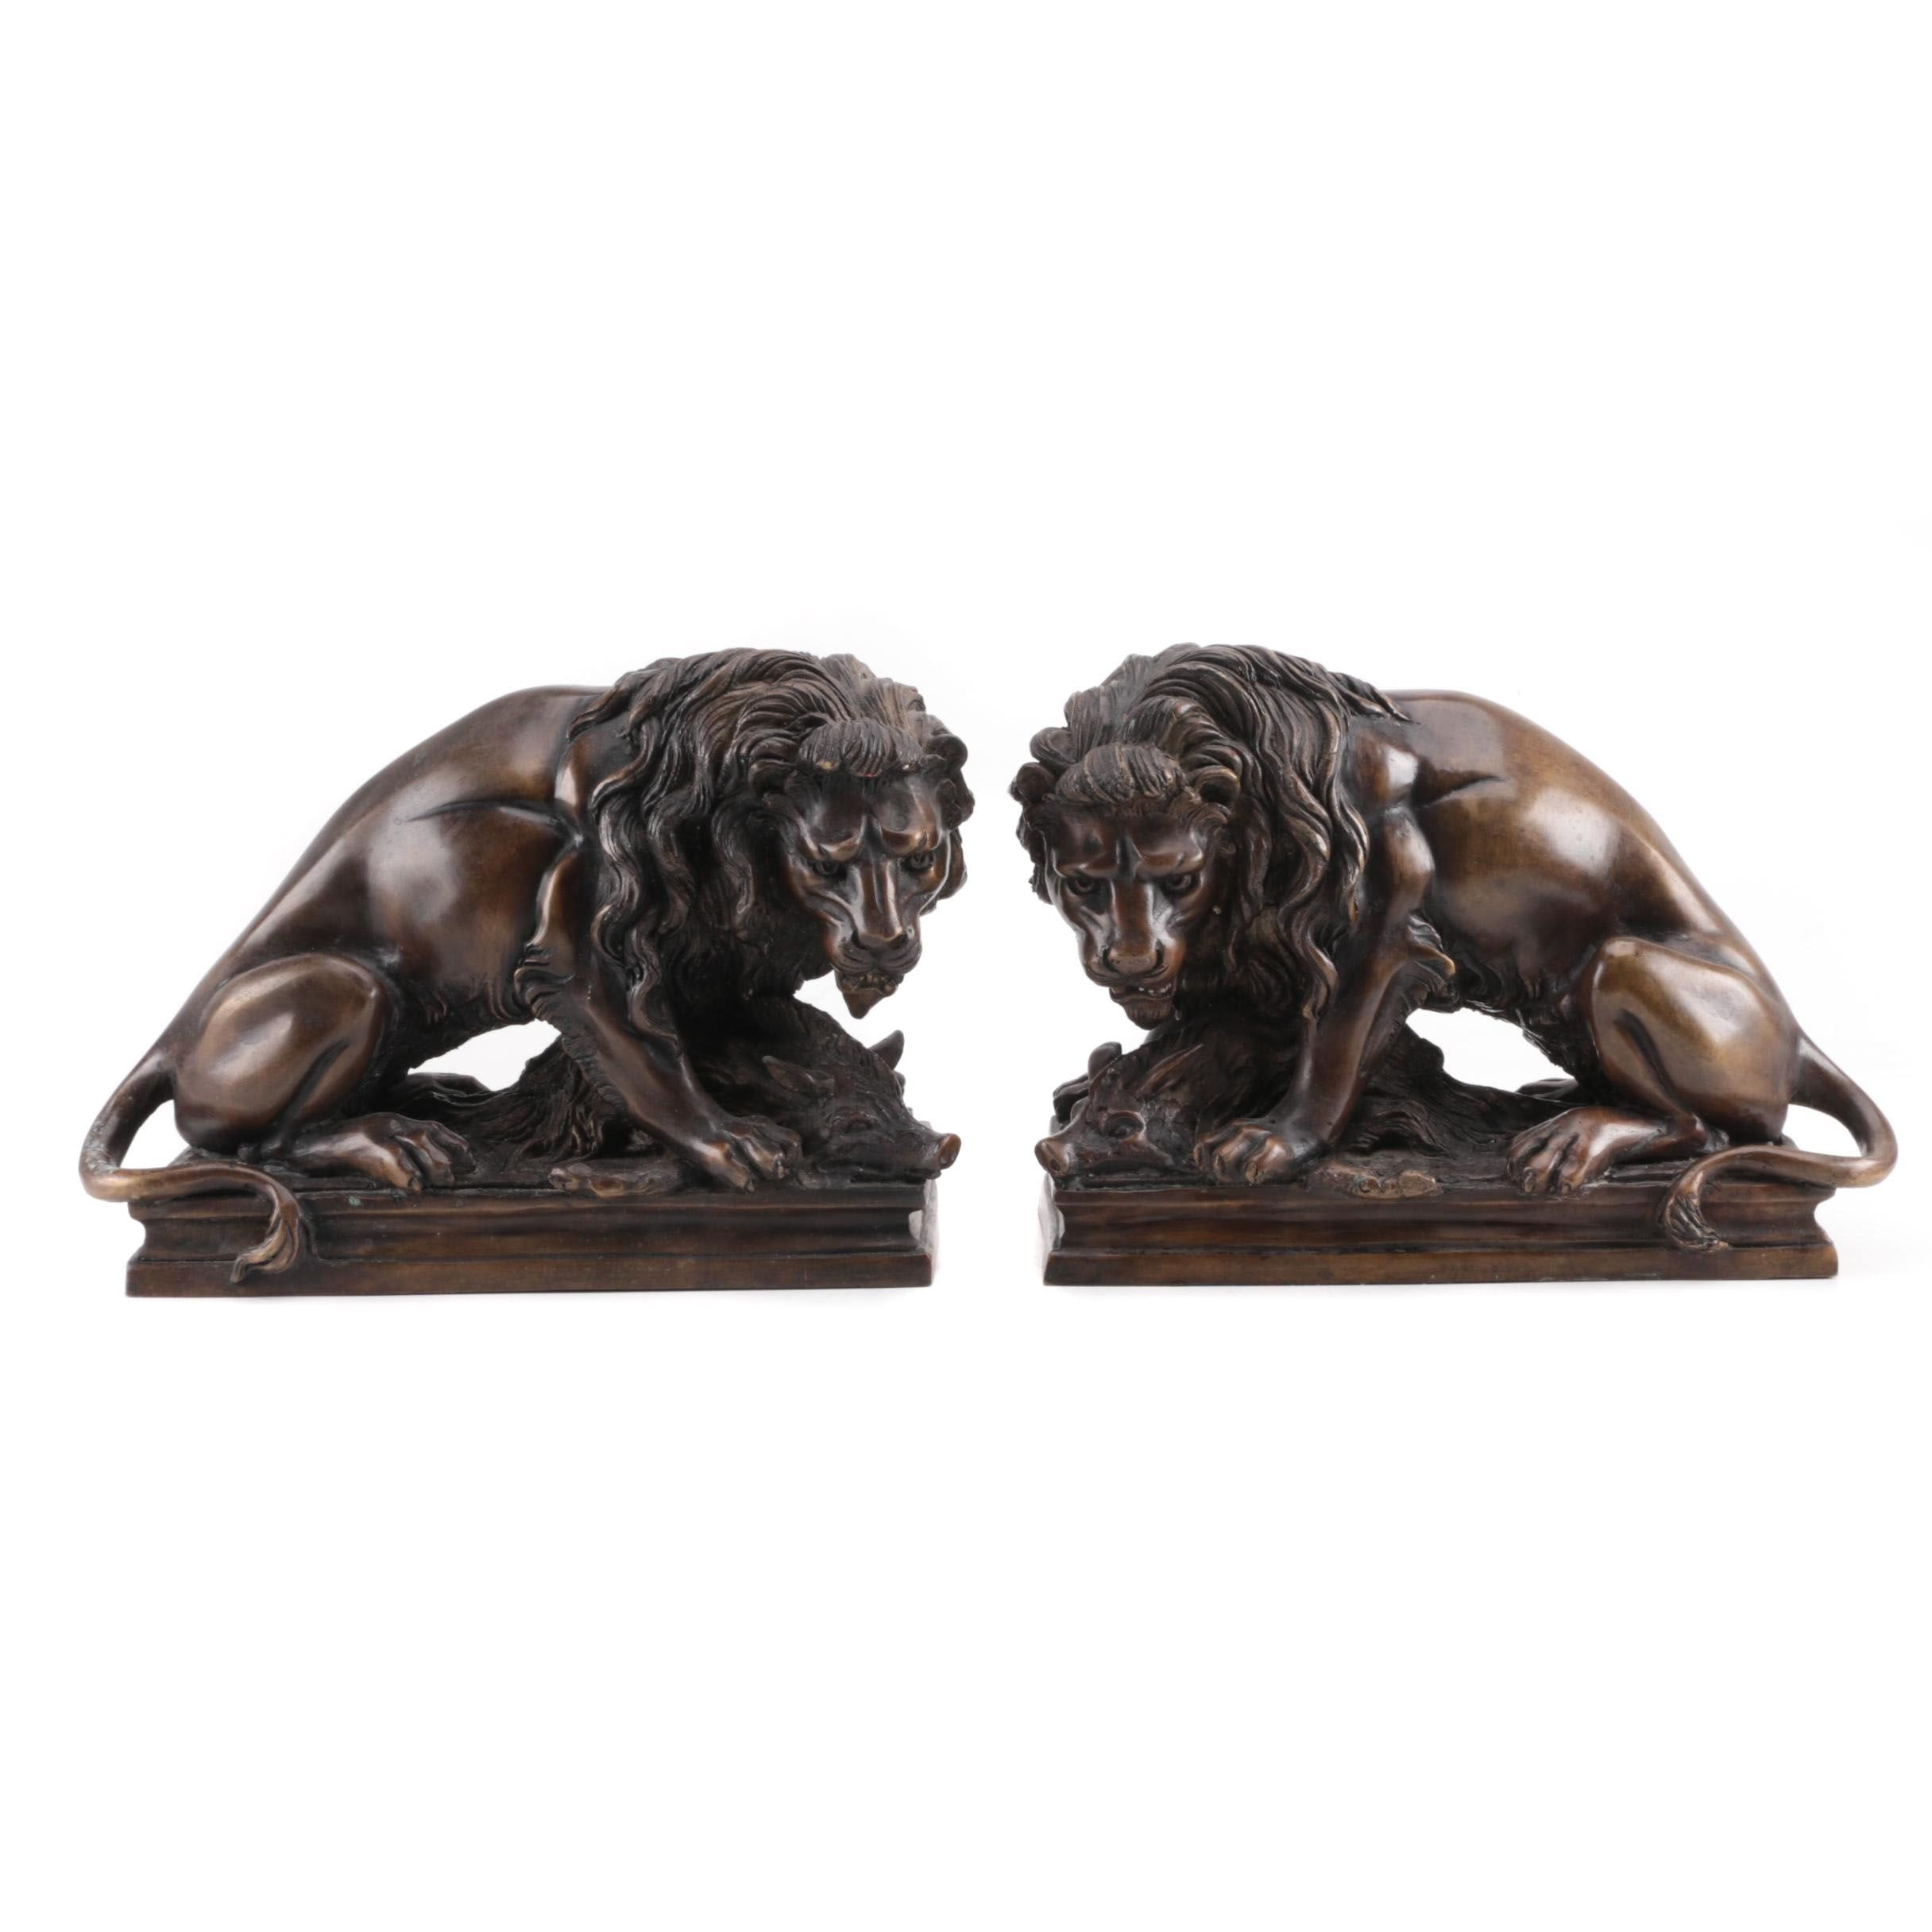 "Reproduction Brass Sculptures after Antoine-Louis Barye ""Lion on Boar"""